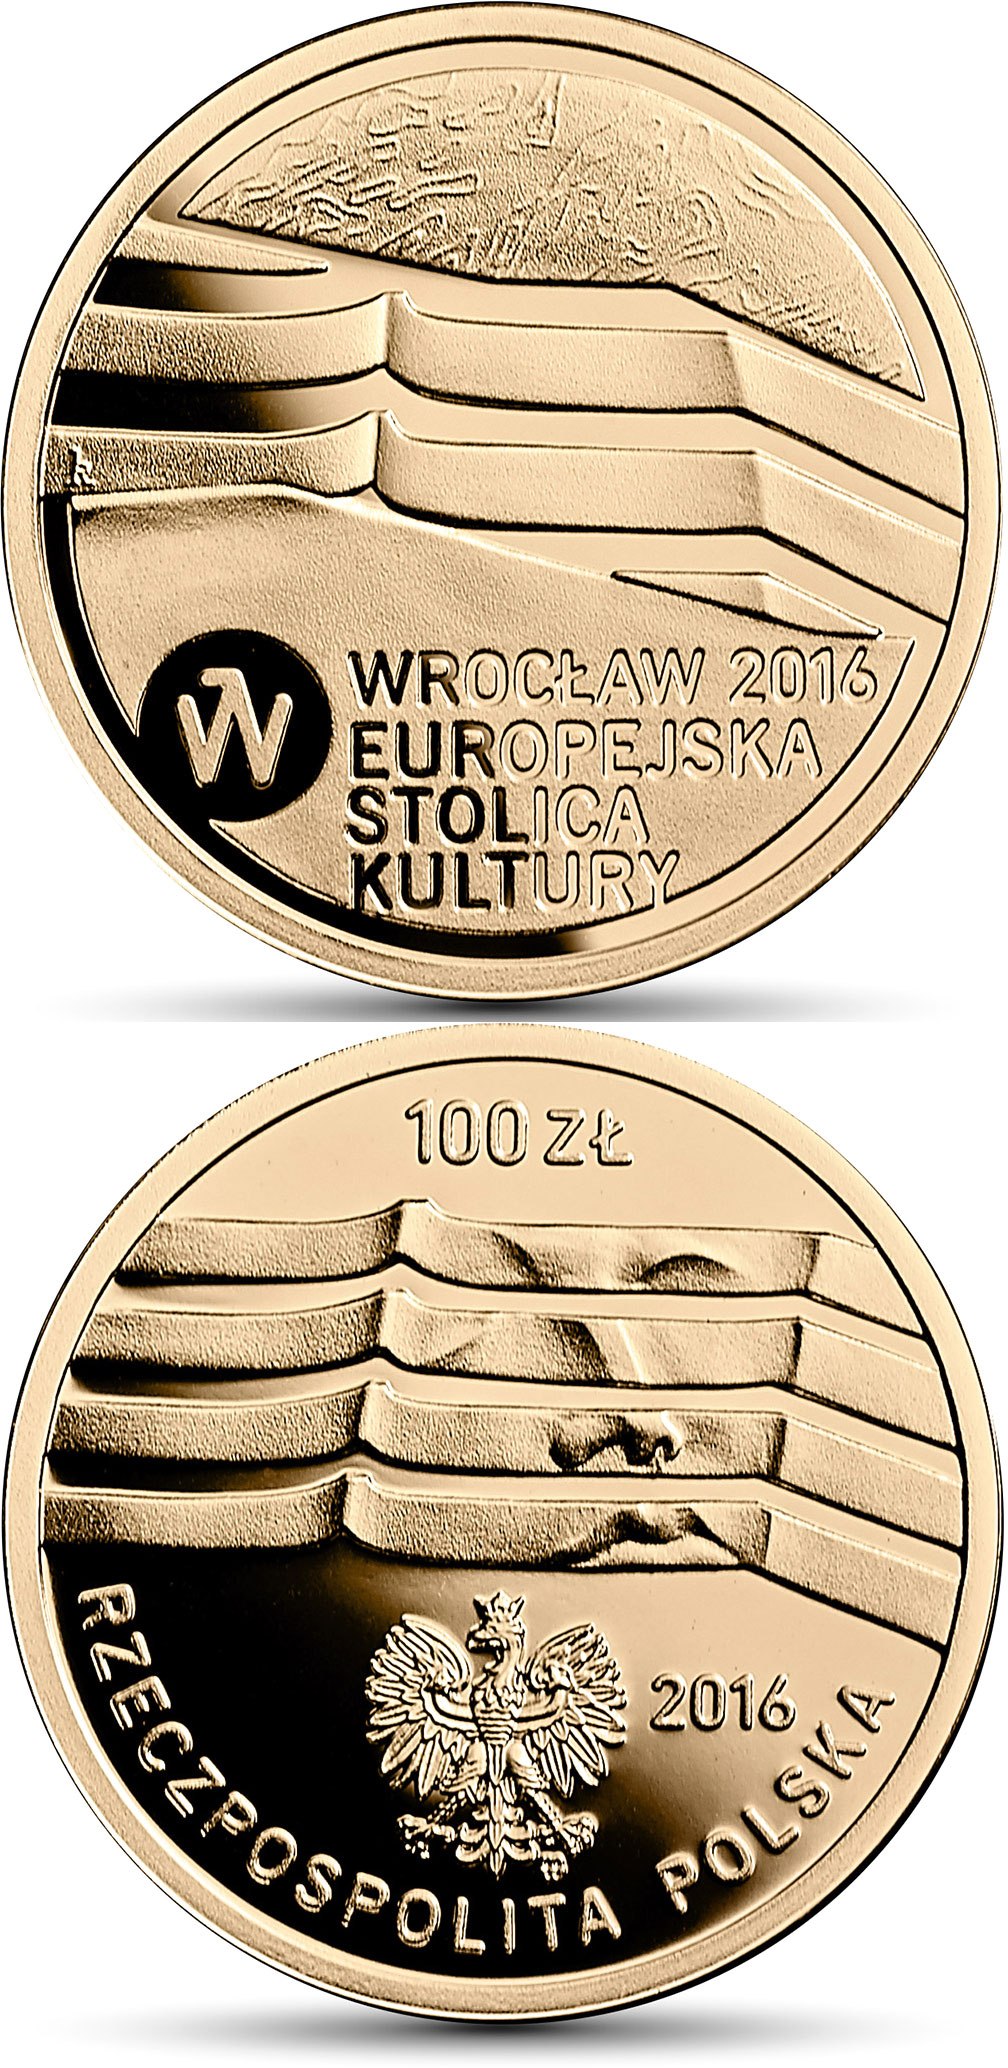 Image of 200 zloty coin - Wrocław – the European Capital of Culture | Poland 2016.  The Gold coin is of Proof quality.